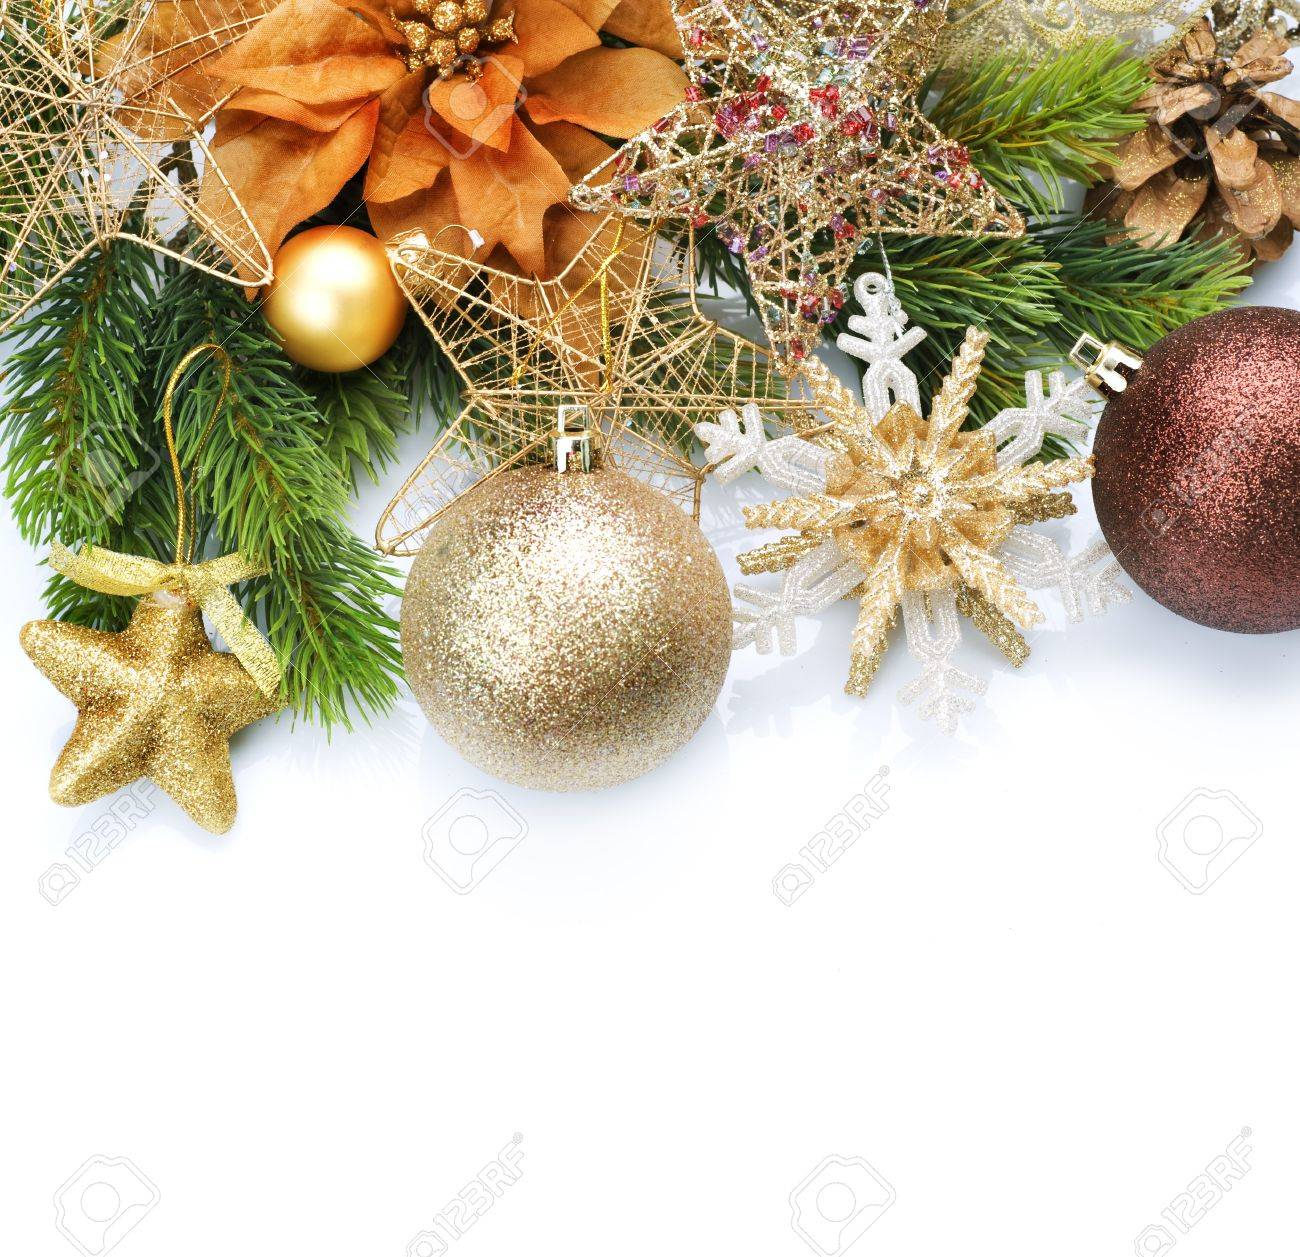 Christmas Decoration border design Stock Photo - 8375025